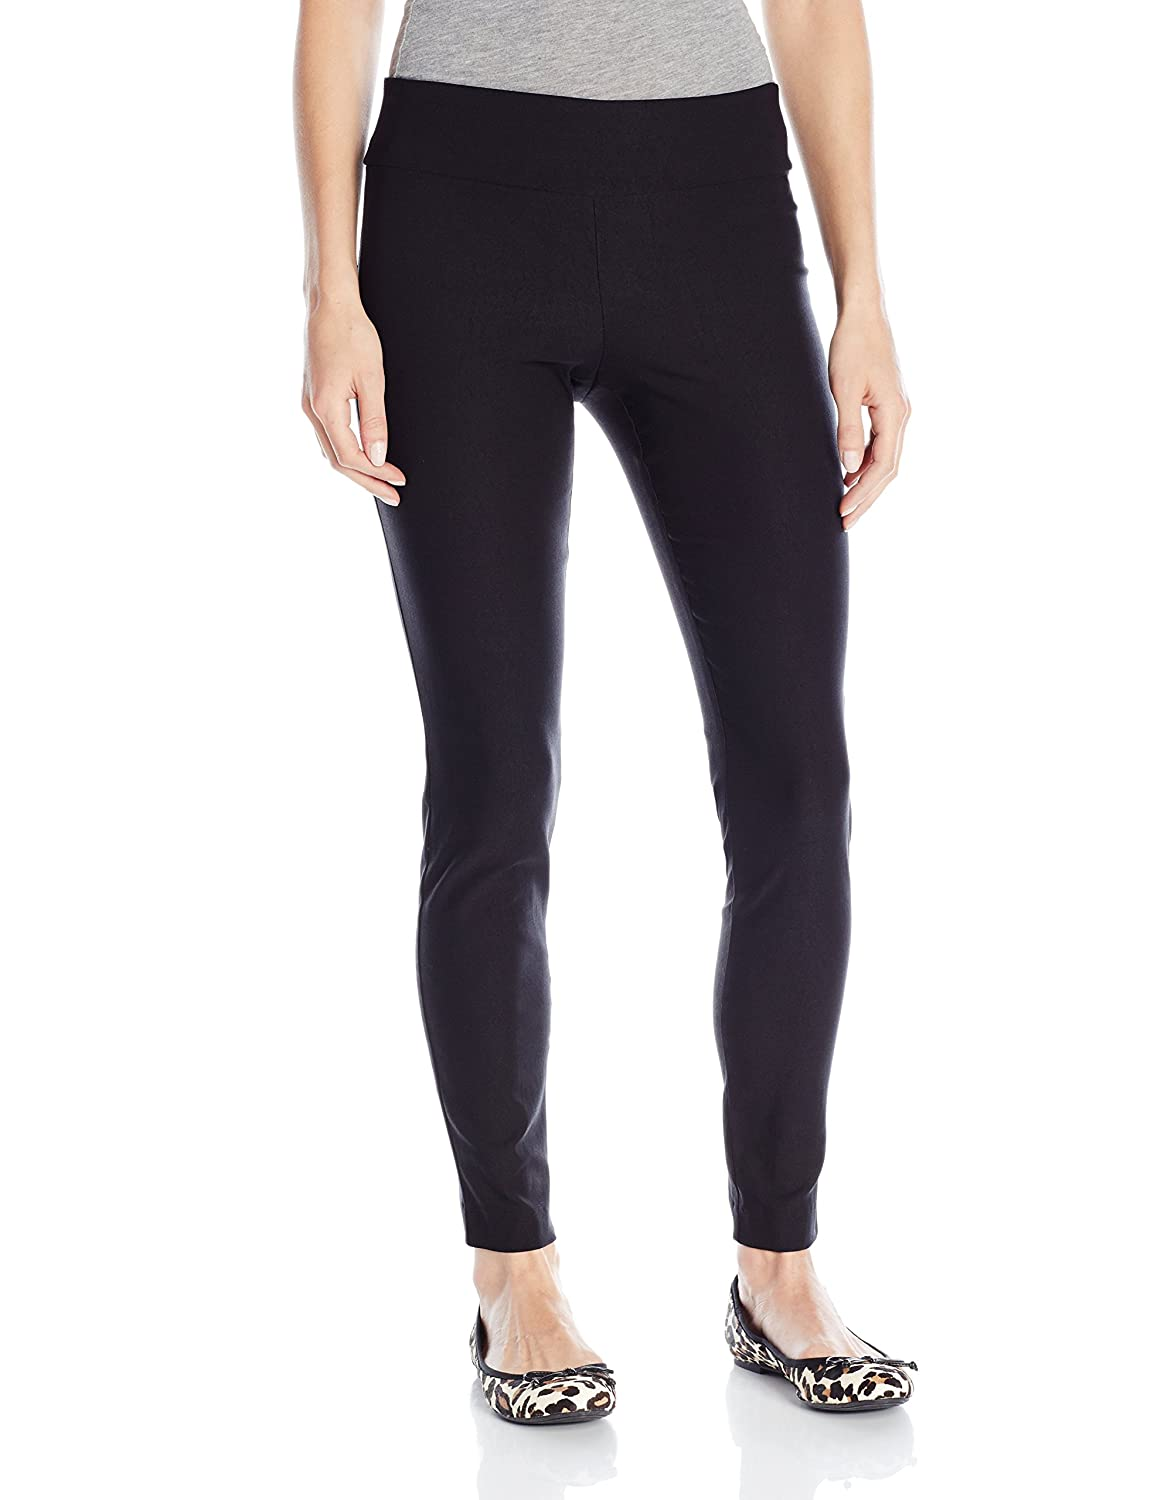 A. Byer Juniors Skinny Pull on Pant